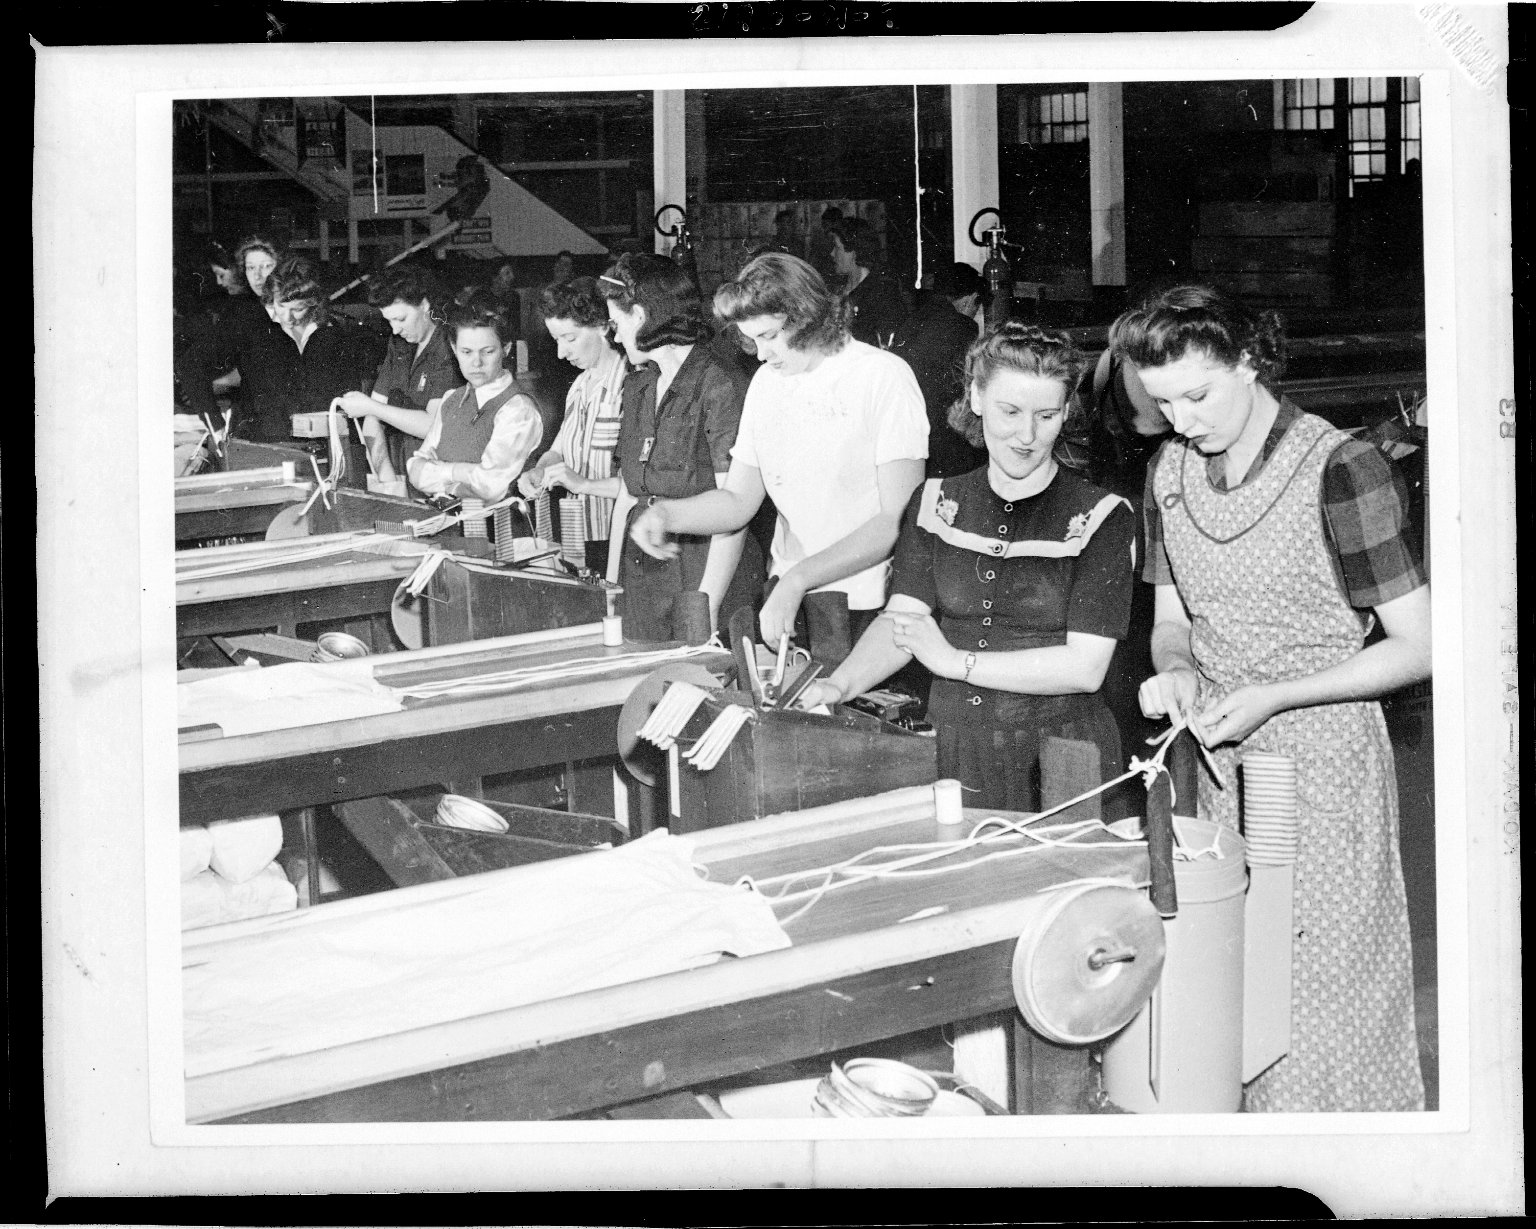 Kalamazoo Stove Company, workers preparing parachutes for loading into flares